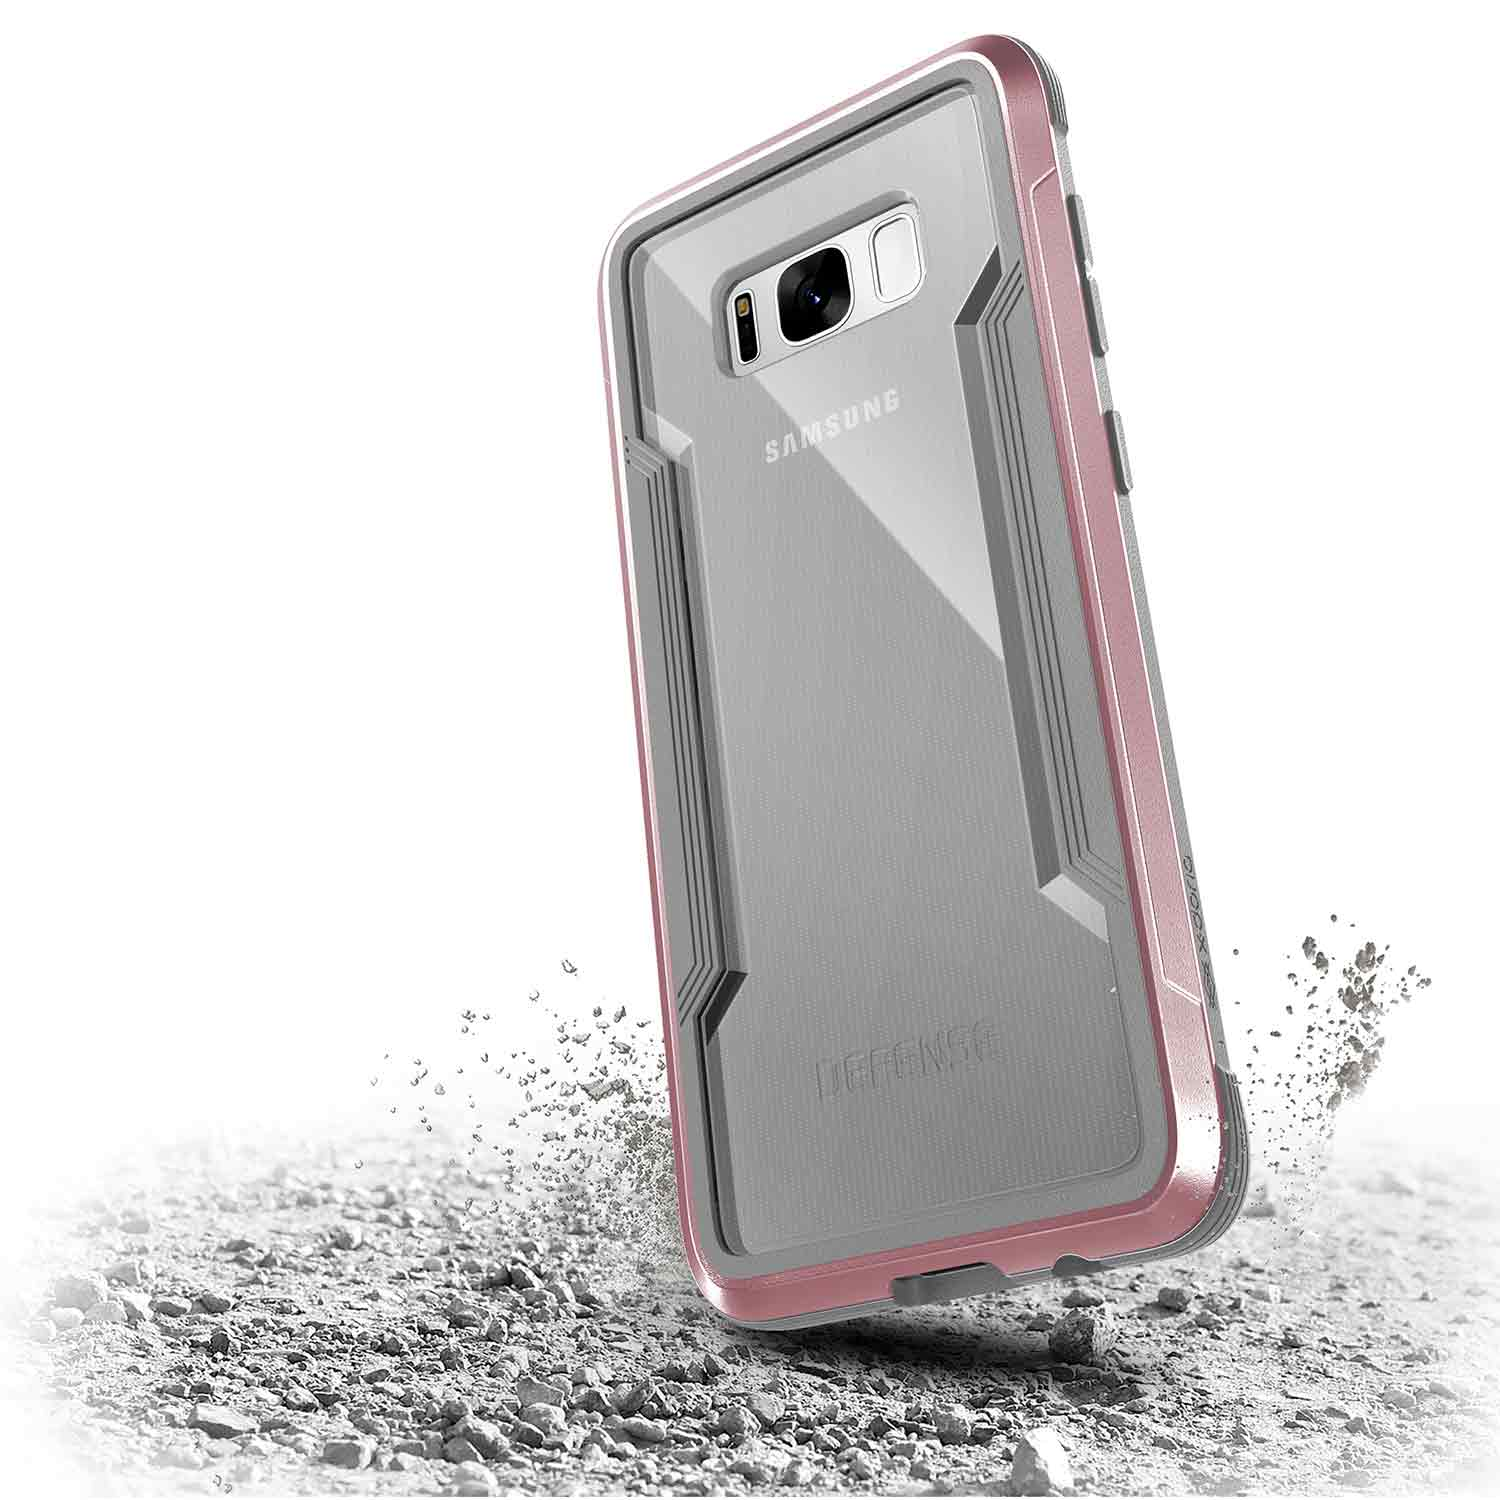 456616 DefenseShield GalaxyS8 Edge RoseGold 01